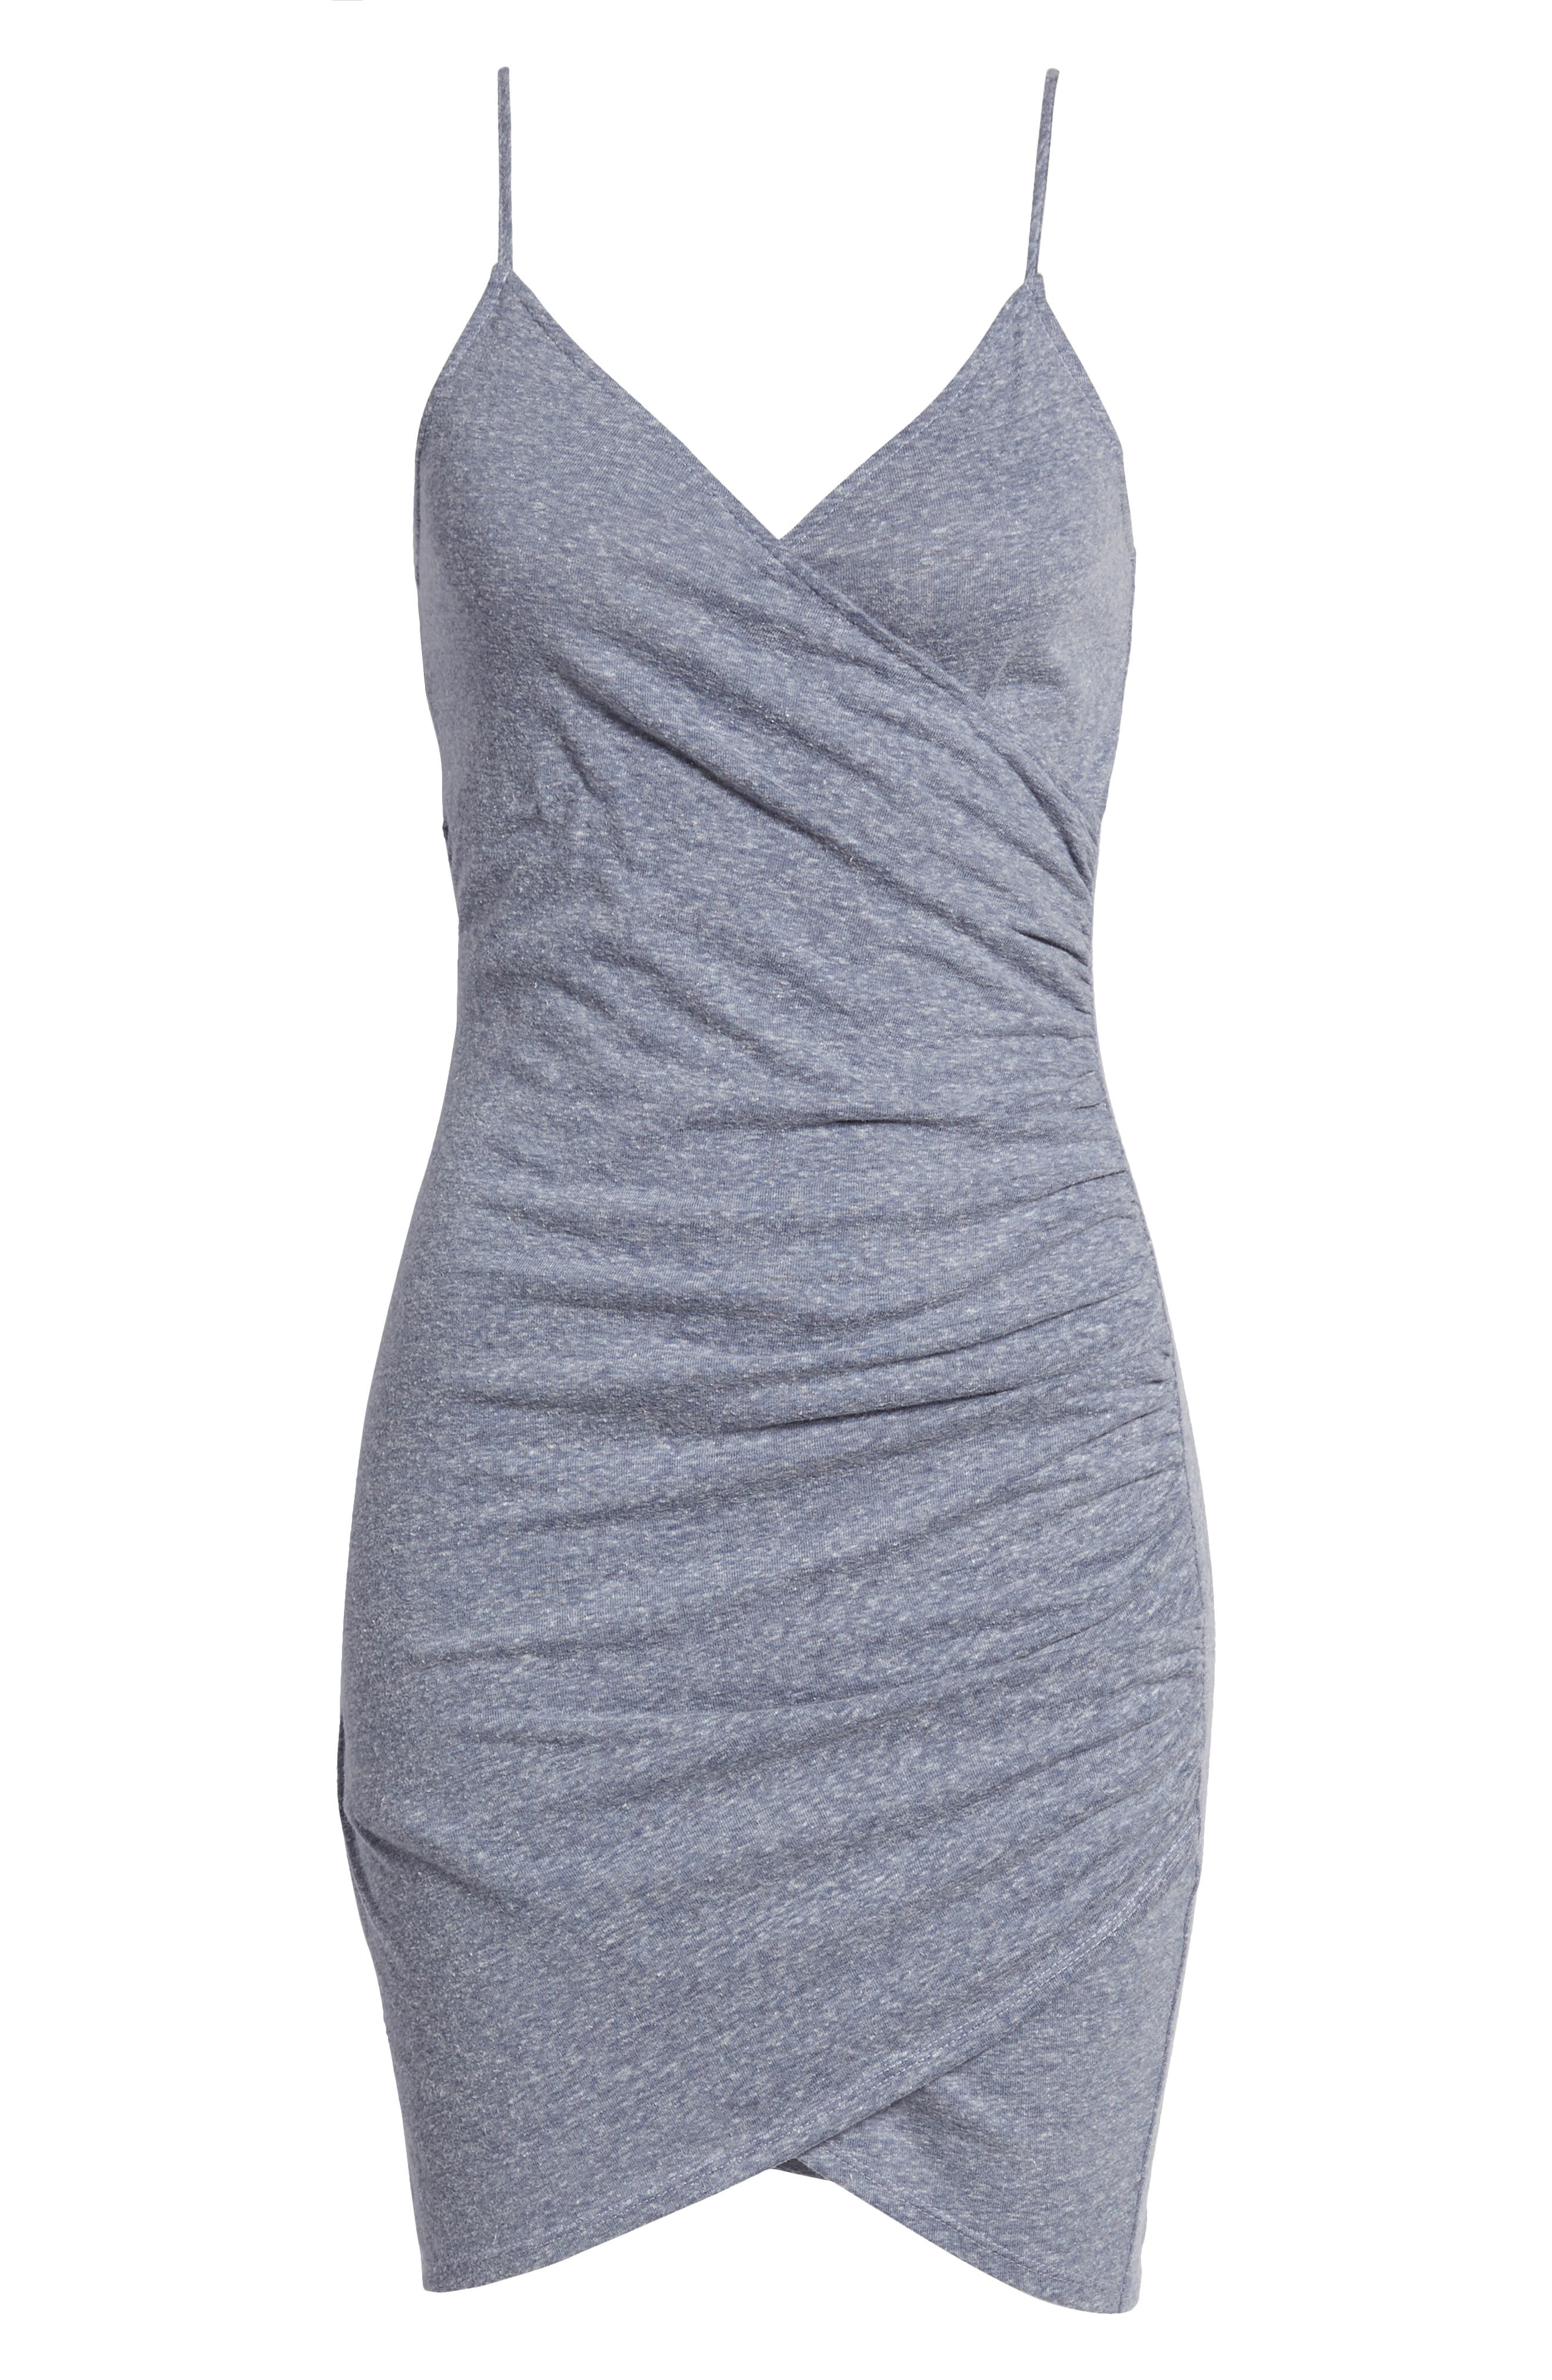 Ruched Sheath Dress,                             Alternate thumbnail 7, color,                             429